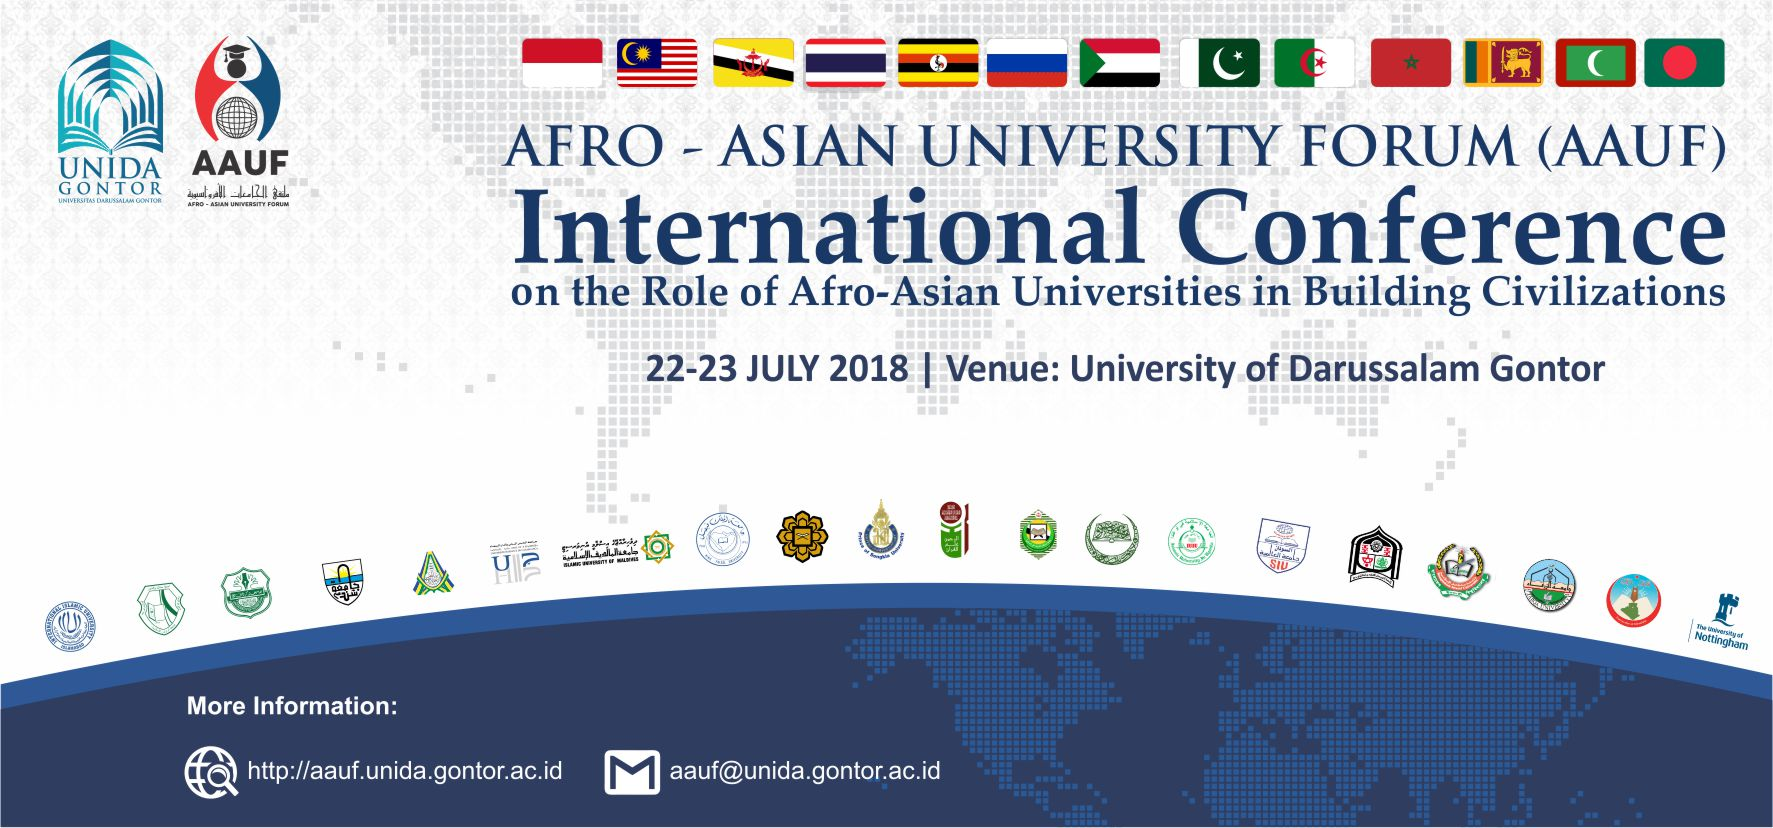 Afro-Asia University Forum at UNIDA Gontor: The themes explained